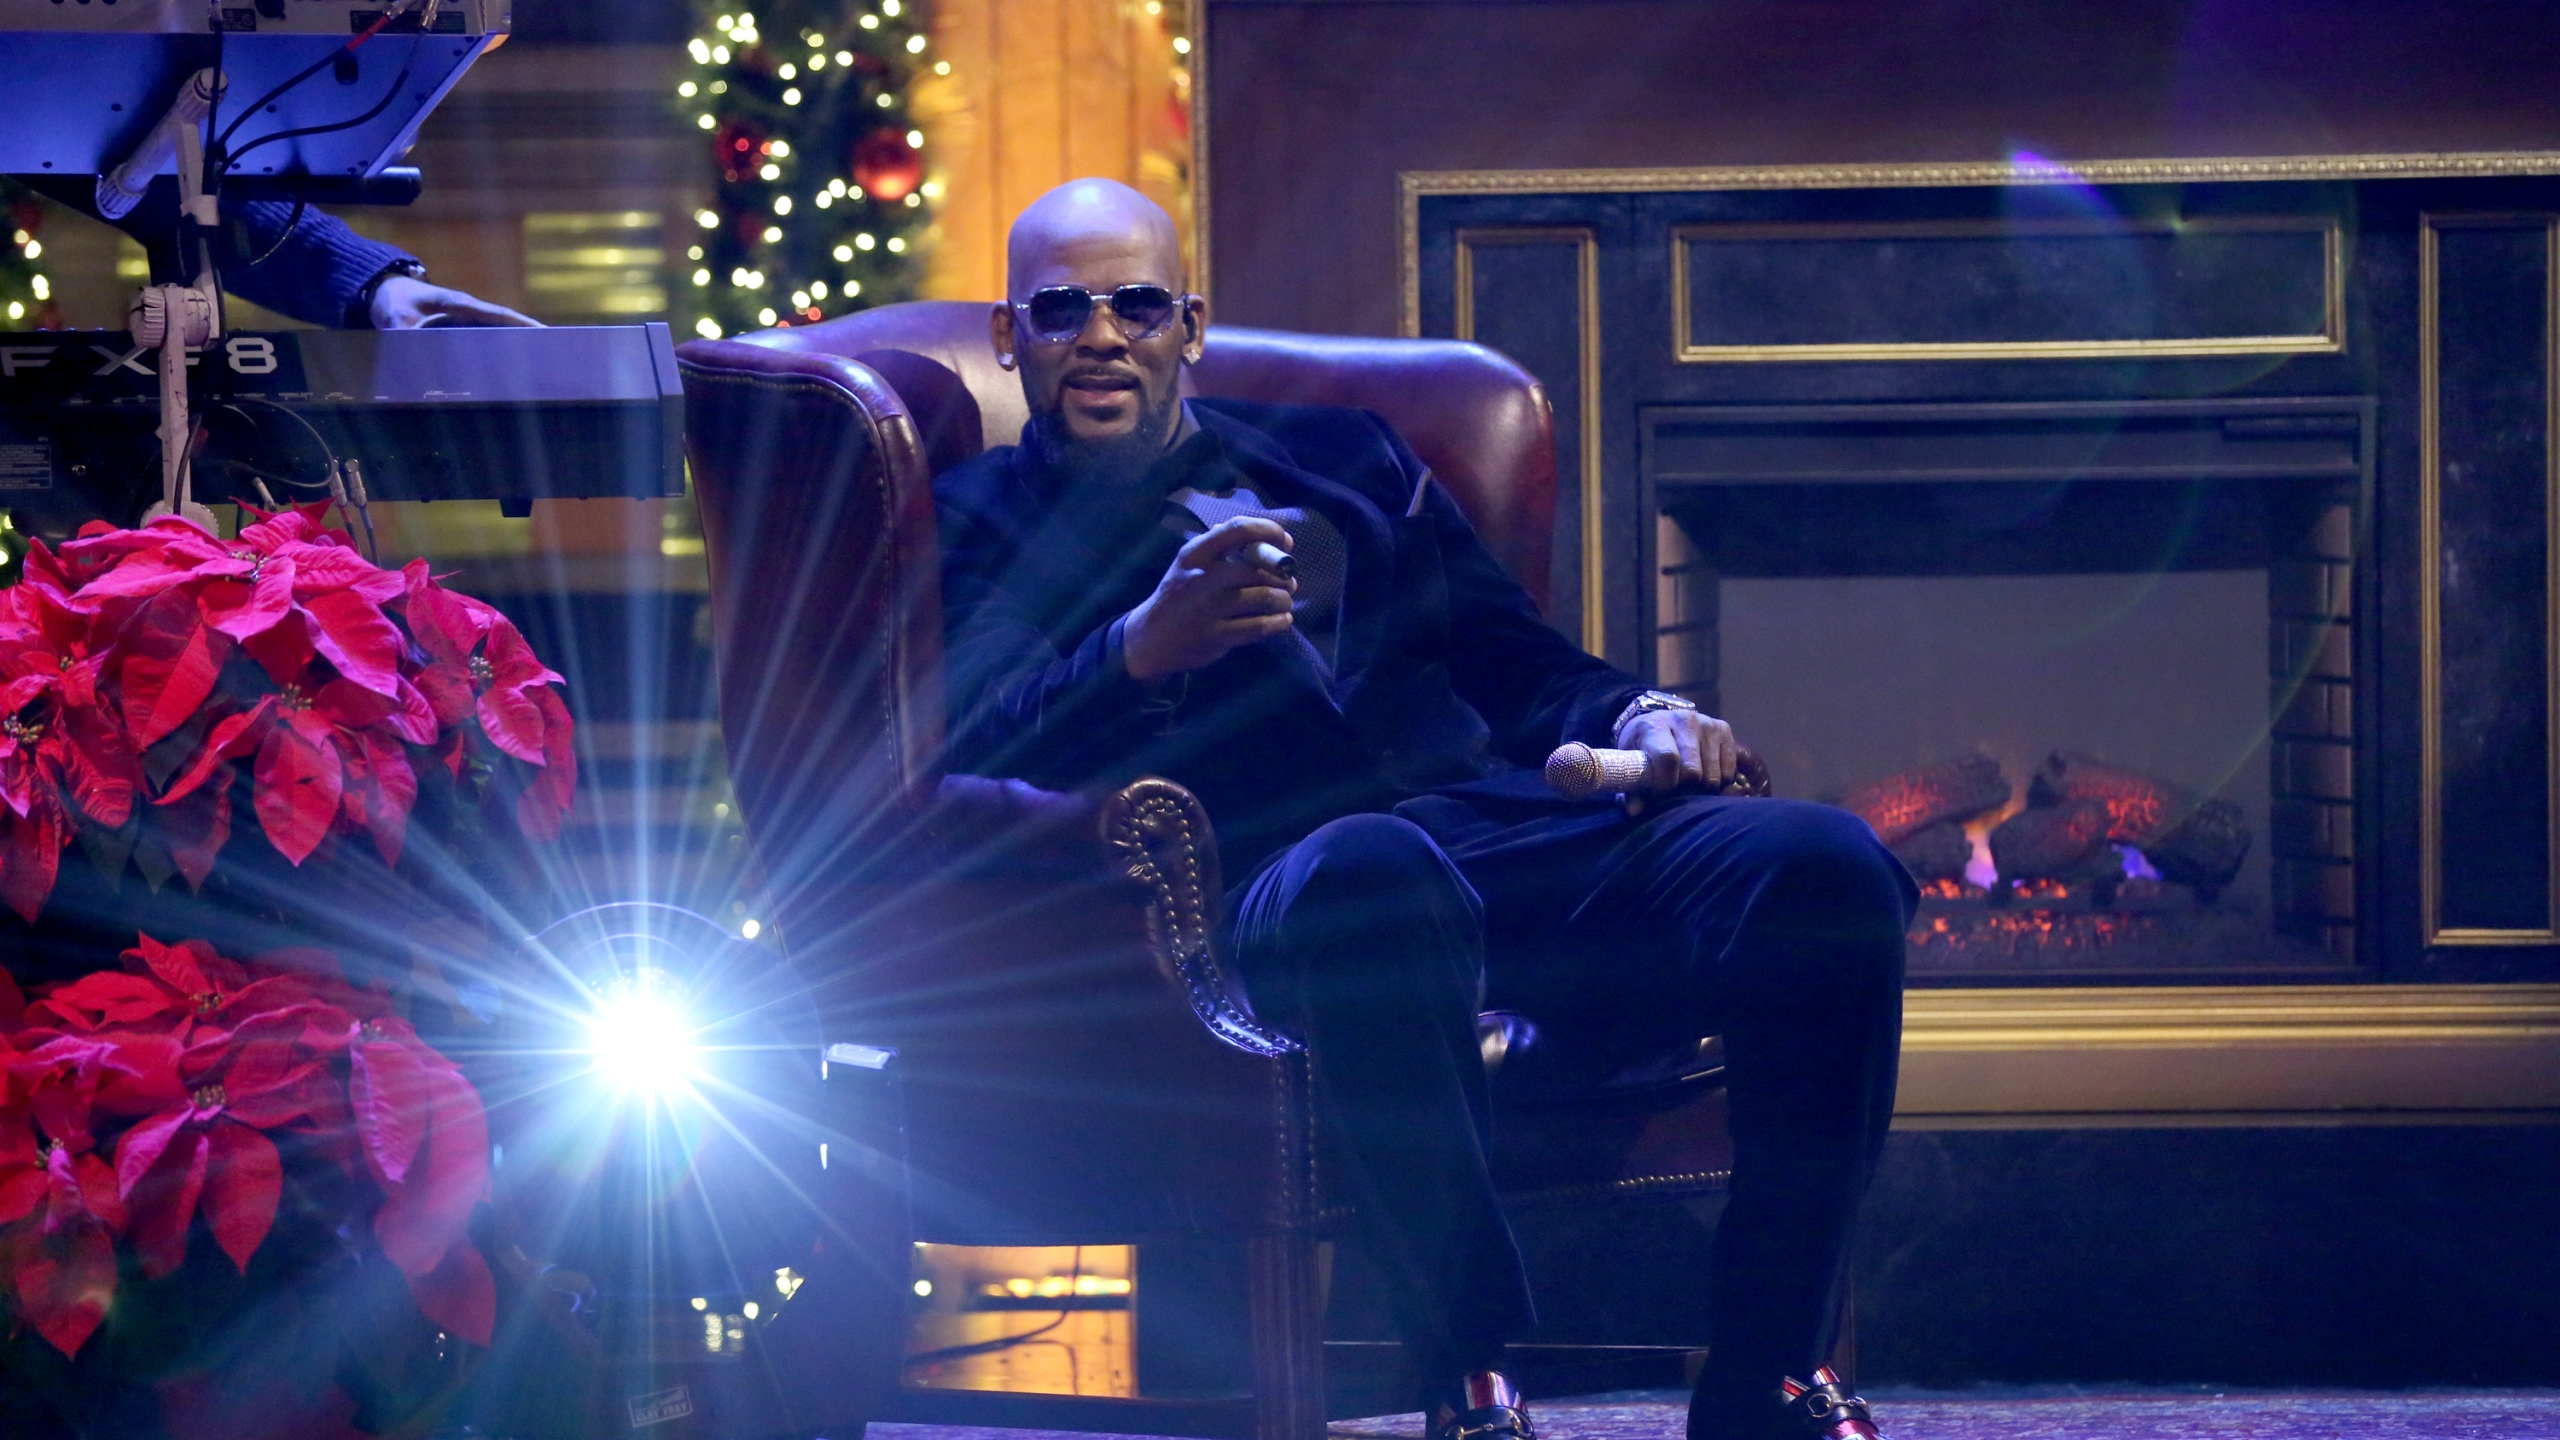 """R. Kelly performs on """"The Tonight Show Starring Jimmy Fallon"""" on Dec. 23, 2016. (Credit: Andrew Lipovsky / NBC / NBCU Photo Bank via Getty Images)"""